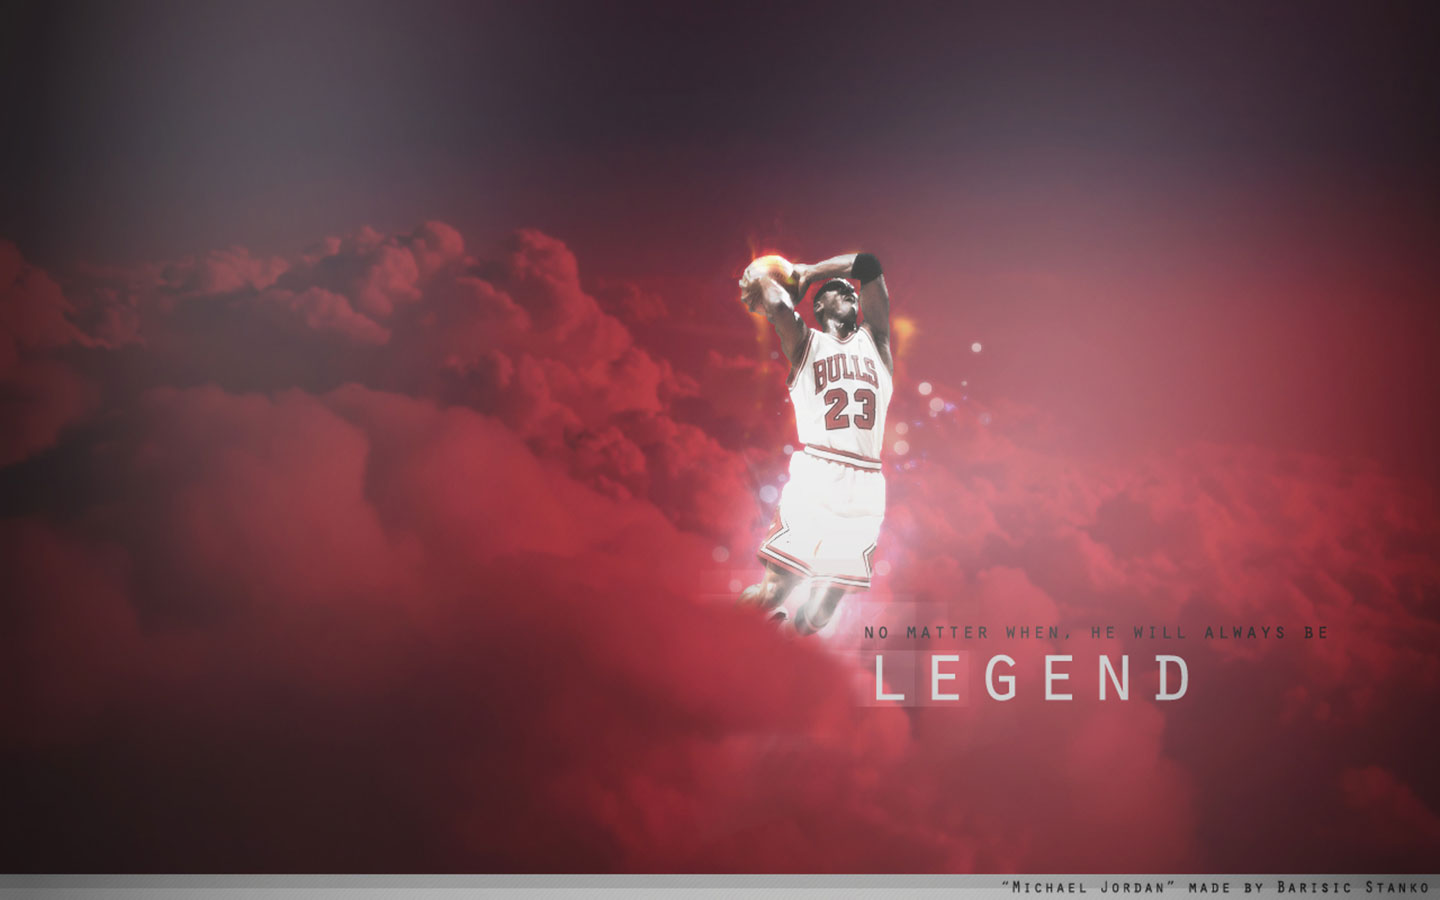 Michael Jordan Wallpaper Big Fan of NBA   Daily Update 1440x900